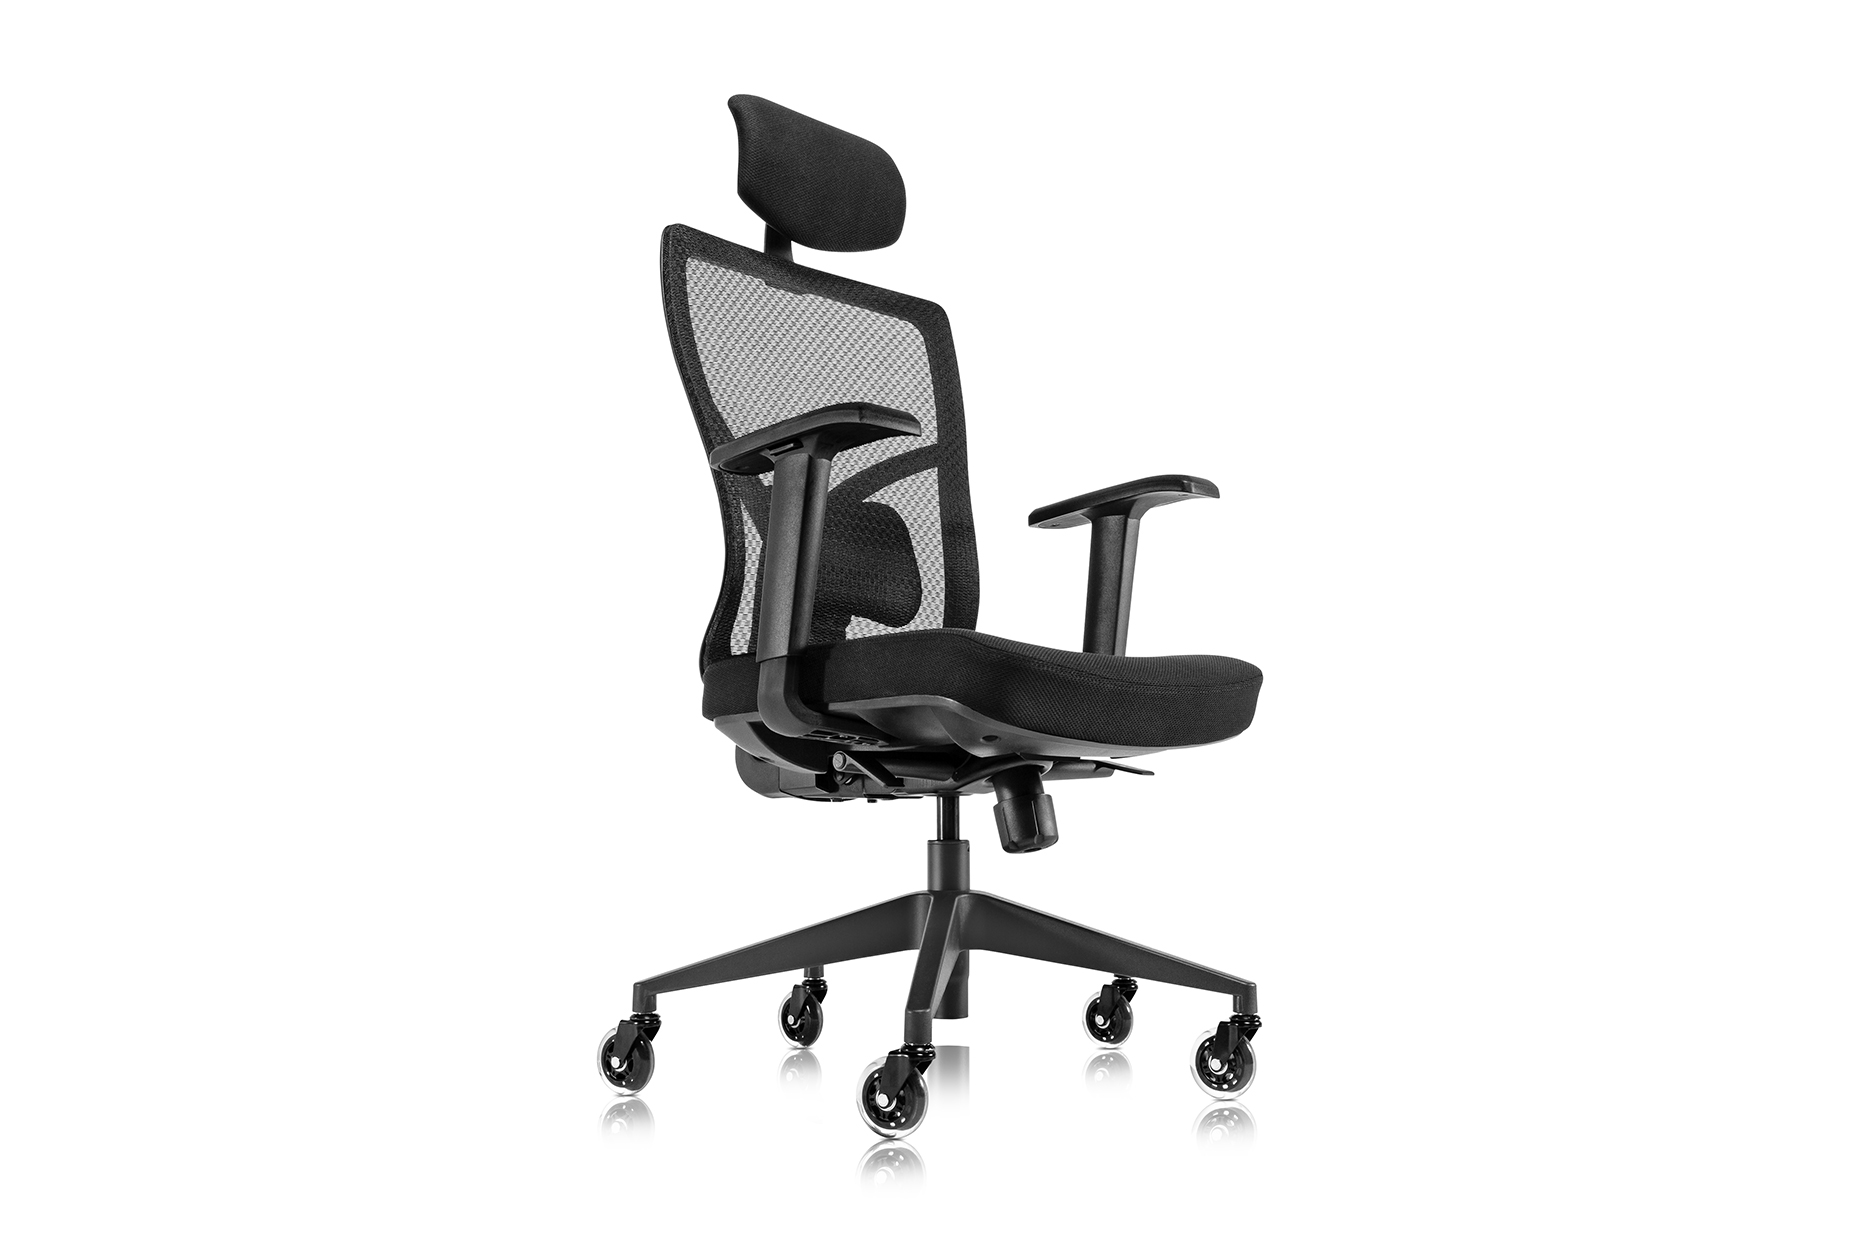 OFFICEOASIS_OFFICECHAIR_WHITEBG_FULL_C